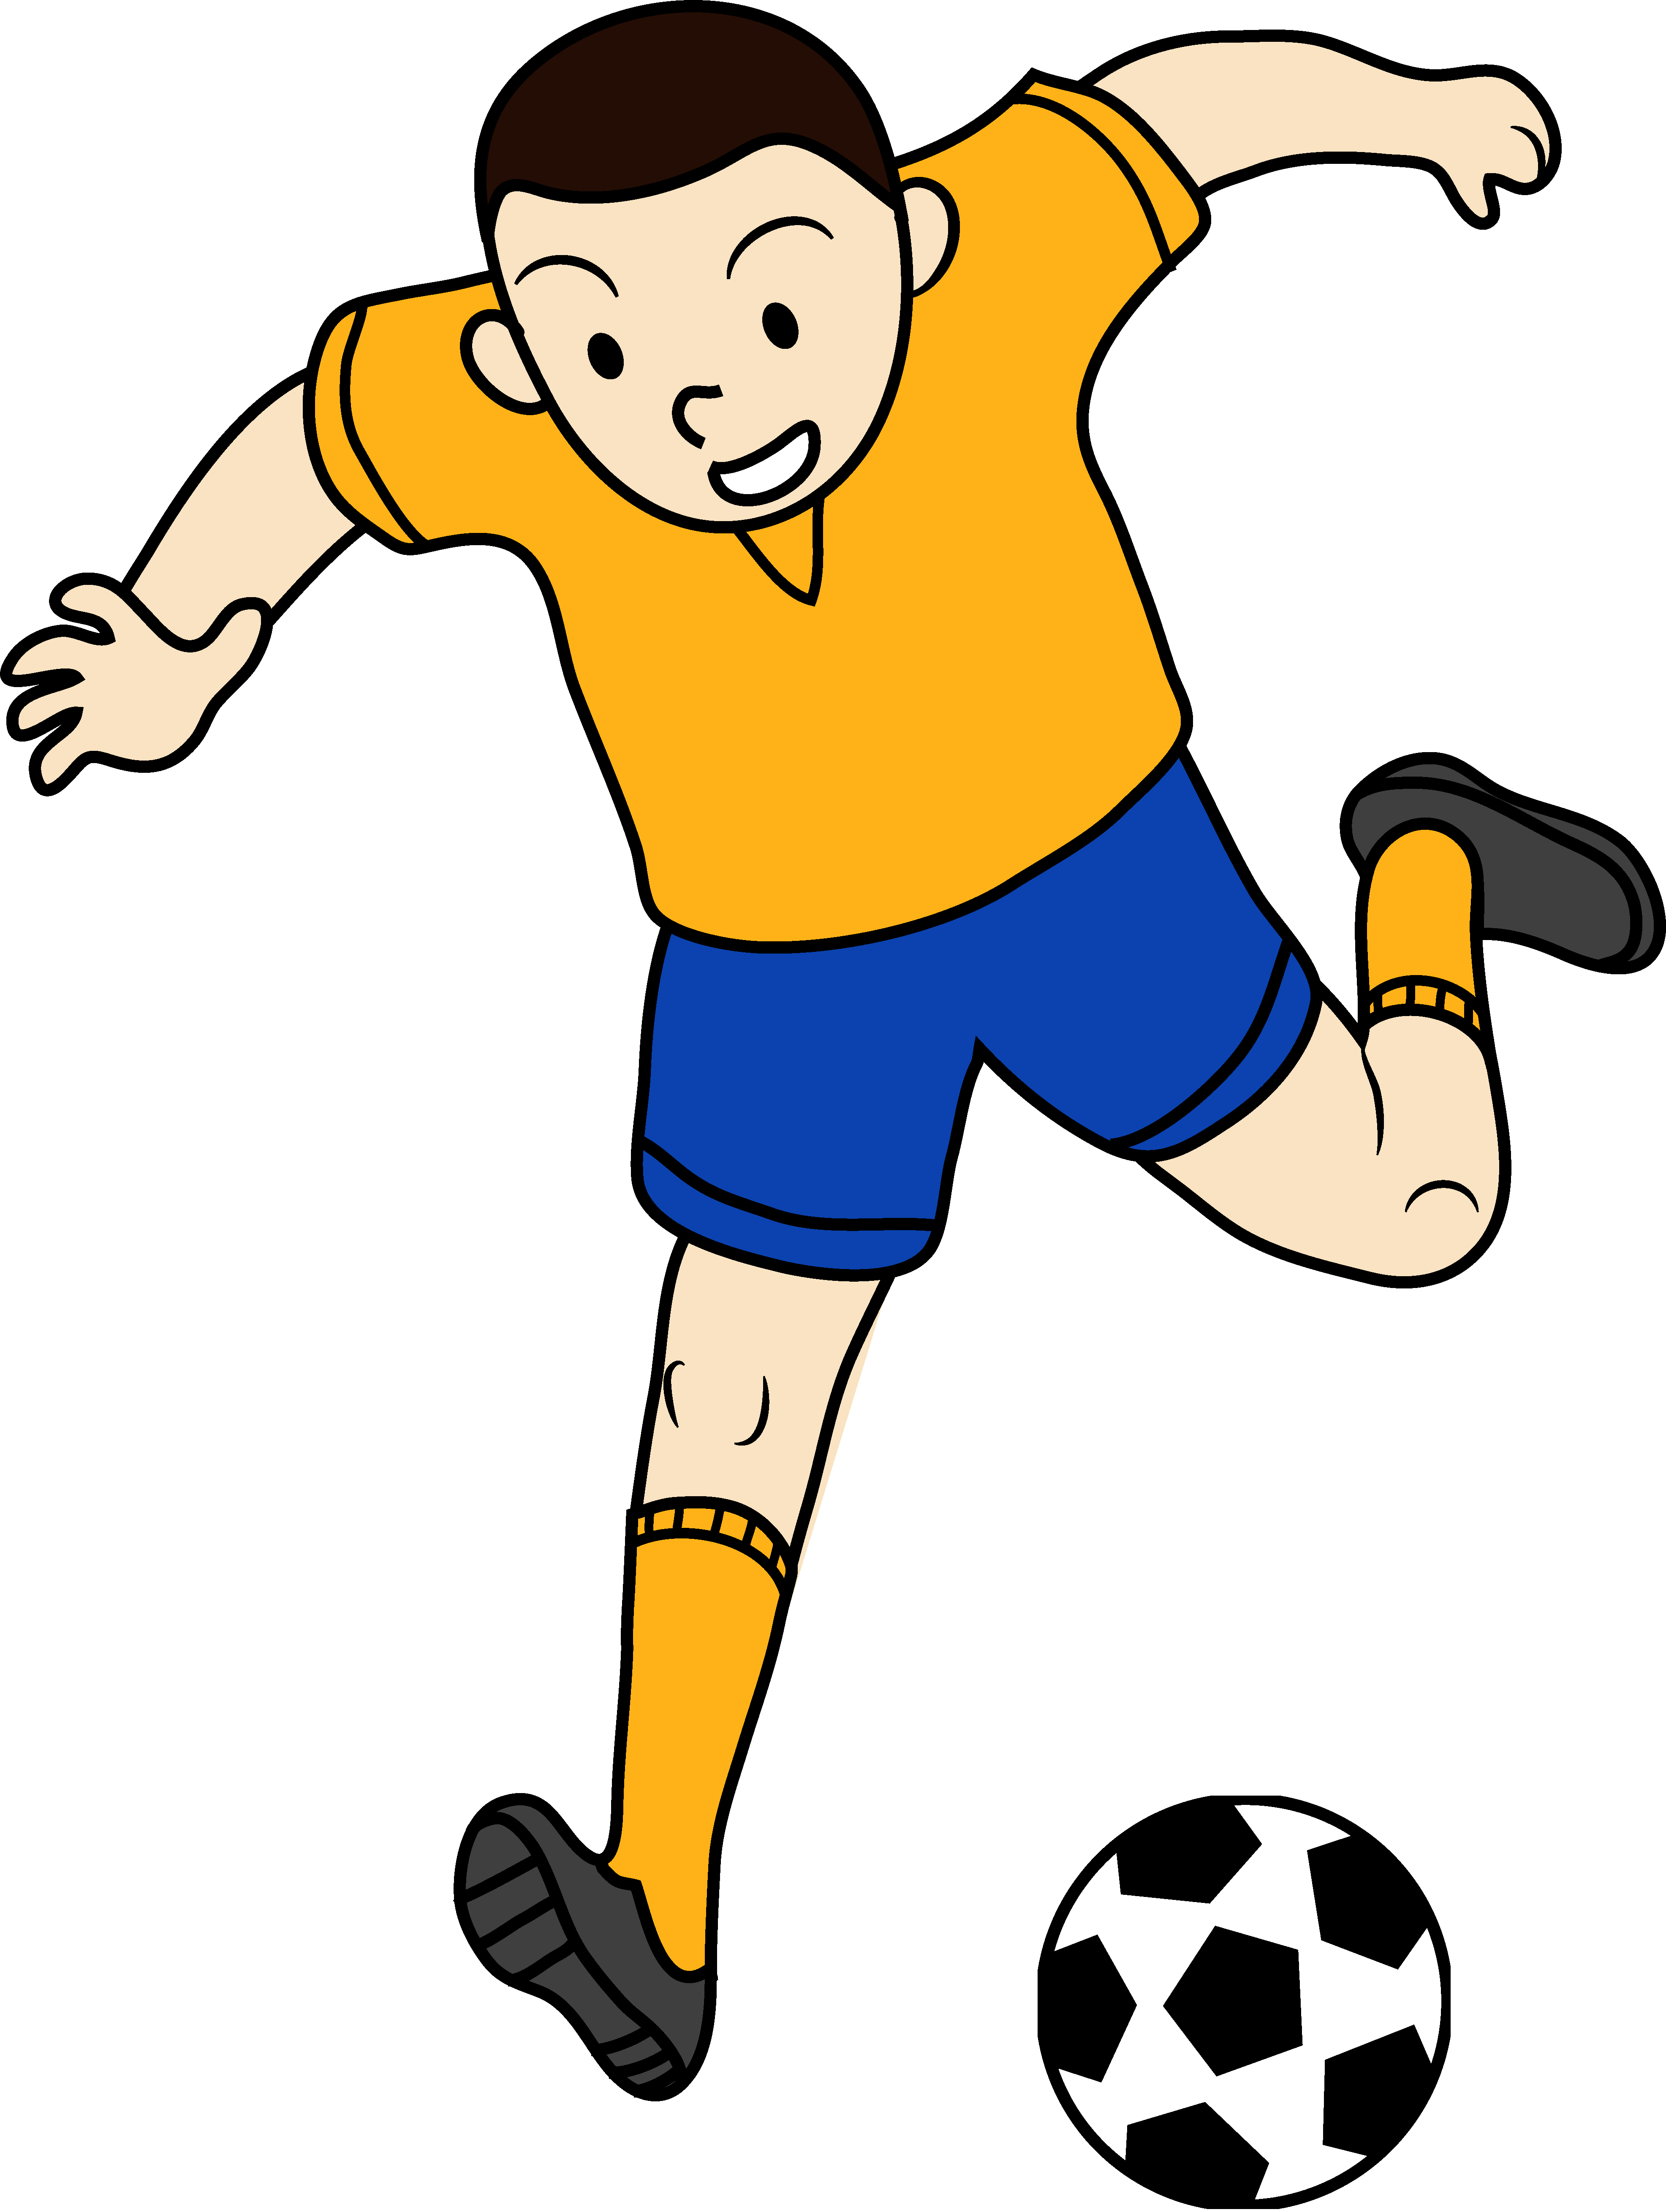 3945x5238 Soccer Player Clipart Black And White Clipart Panda